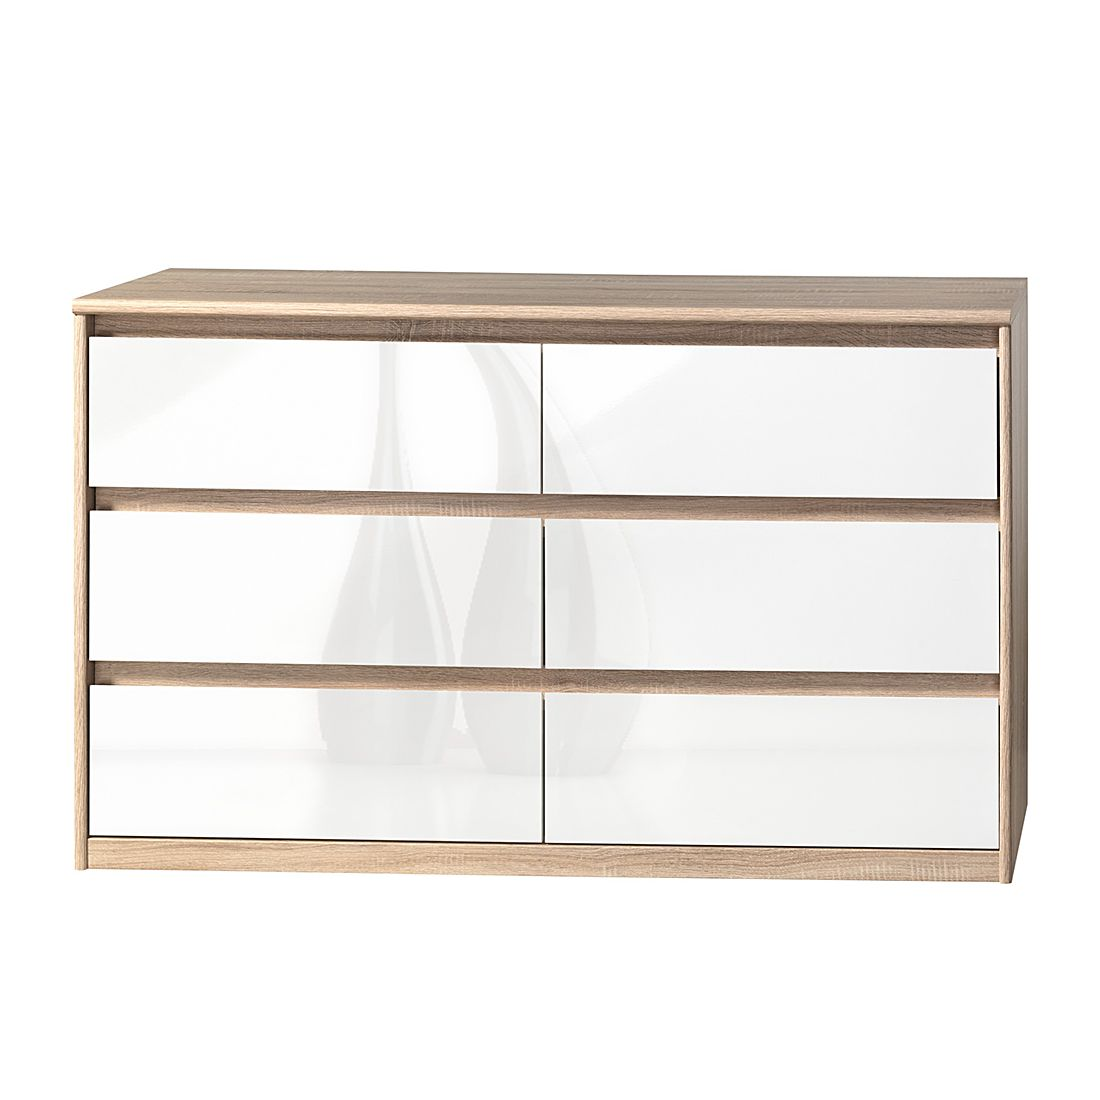 Home 24 - Buffet soft smart ii - imitation chêne / blanc brillant, cs schmal